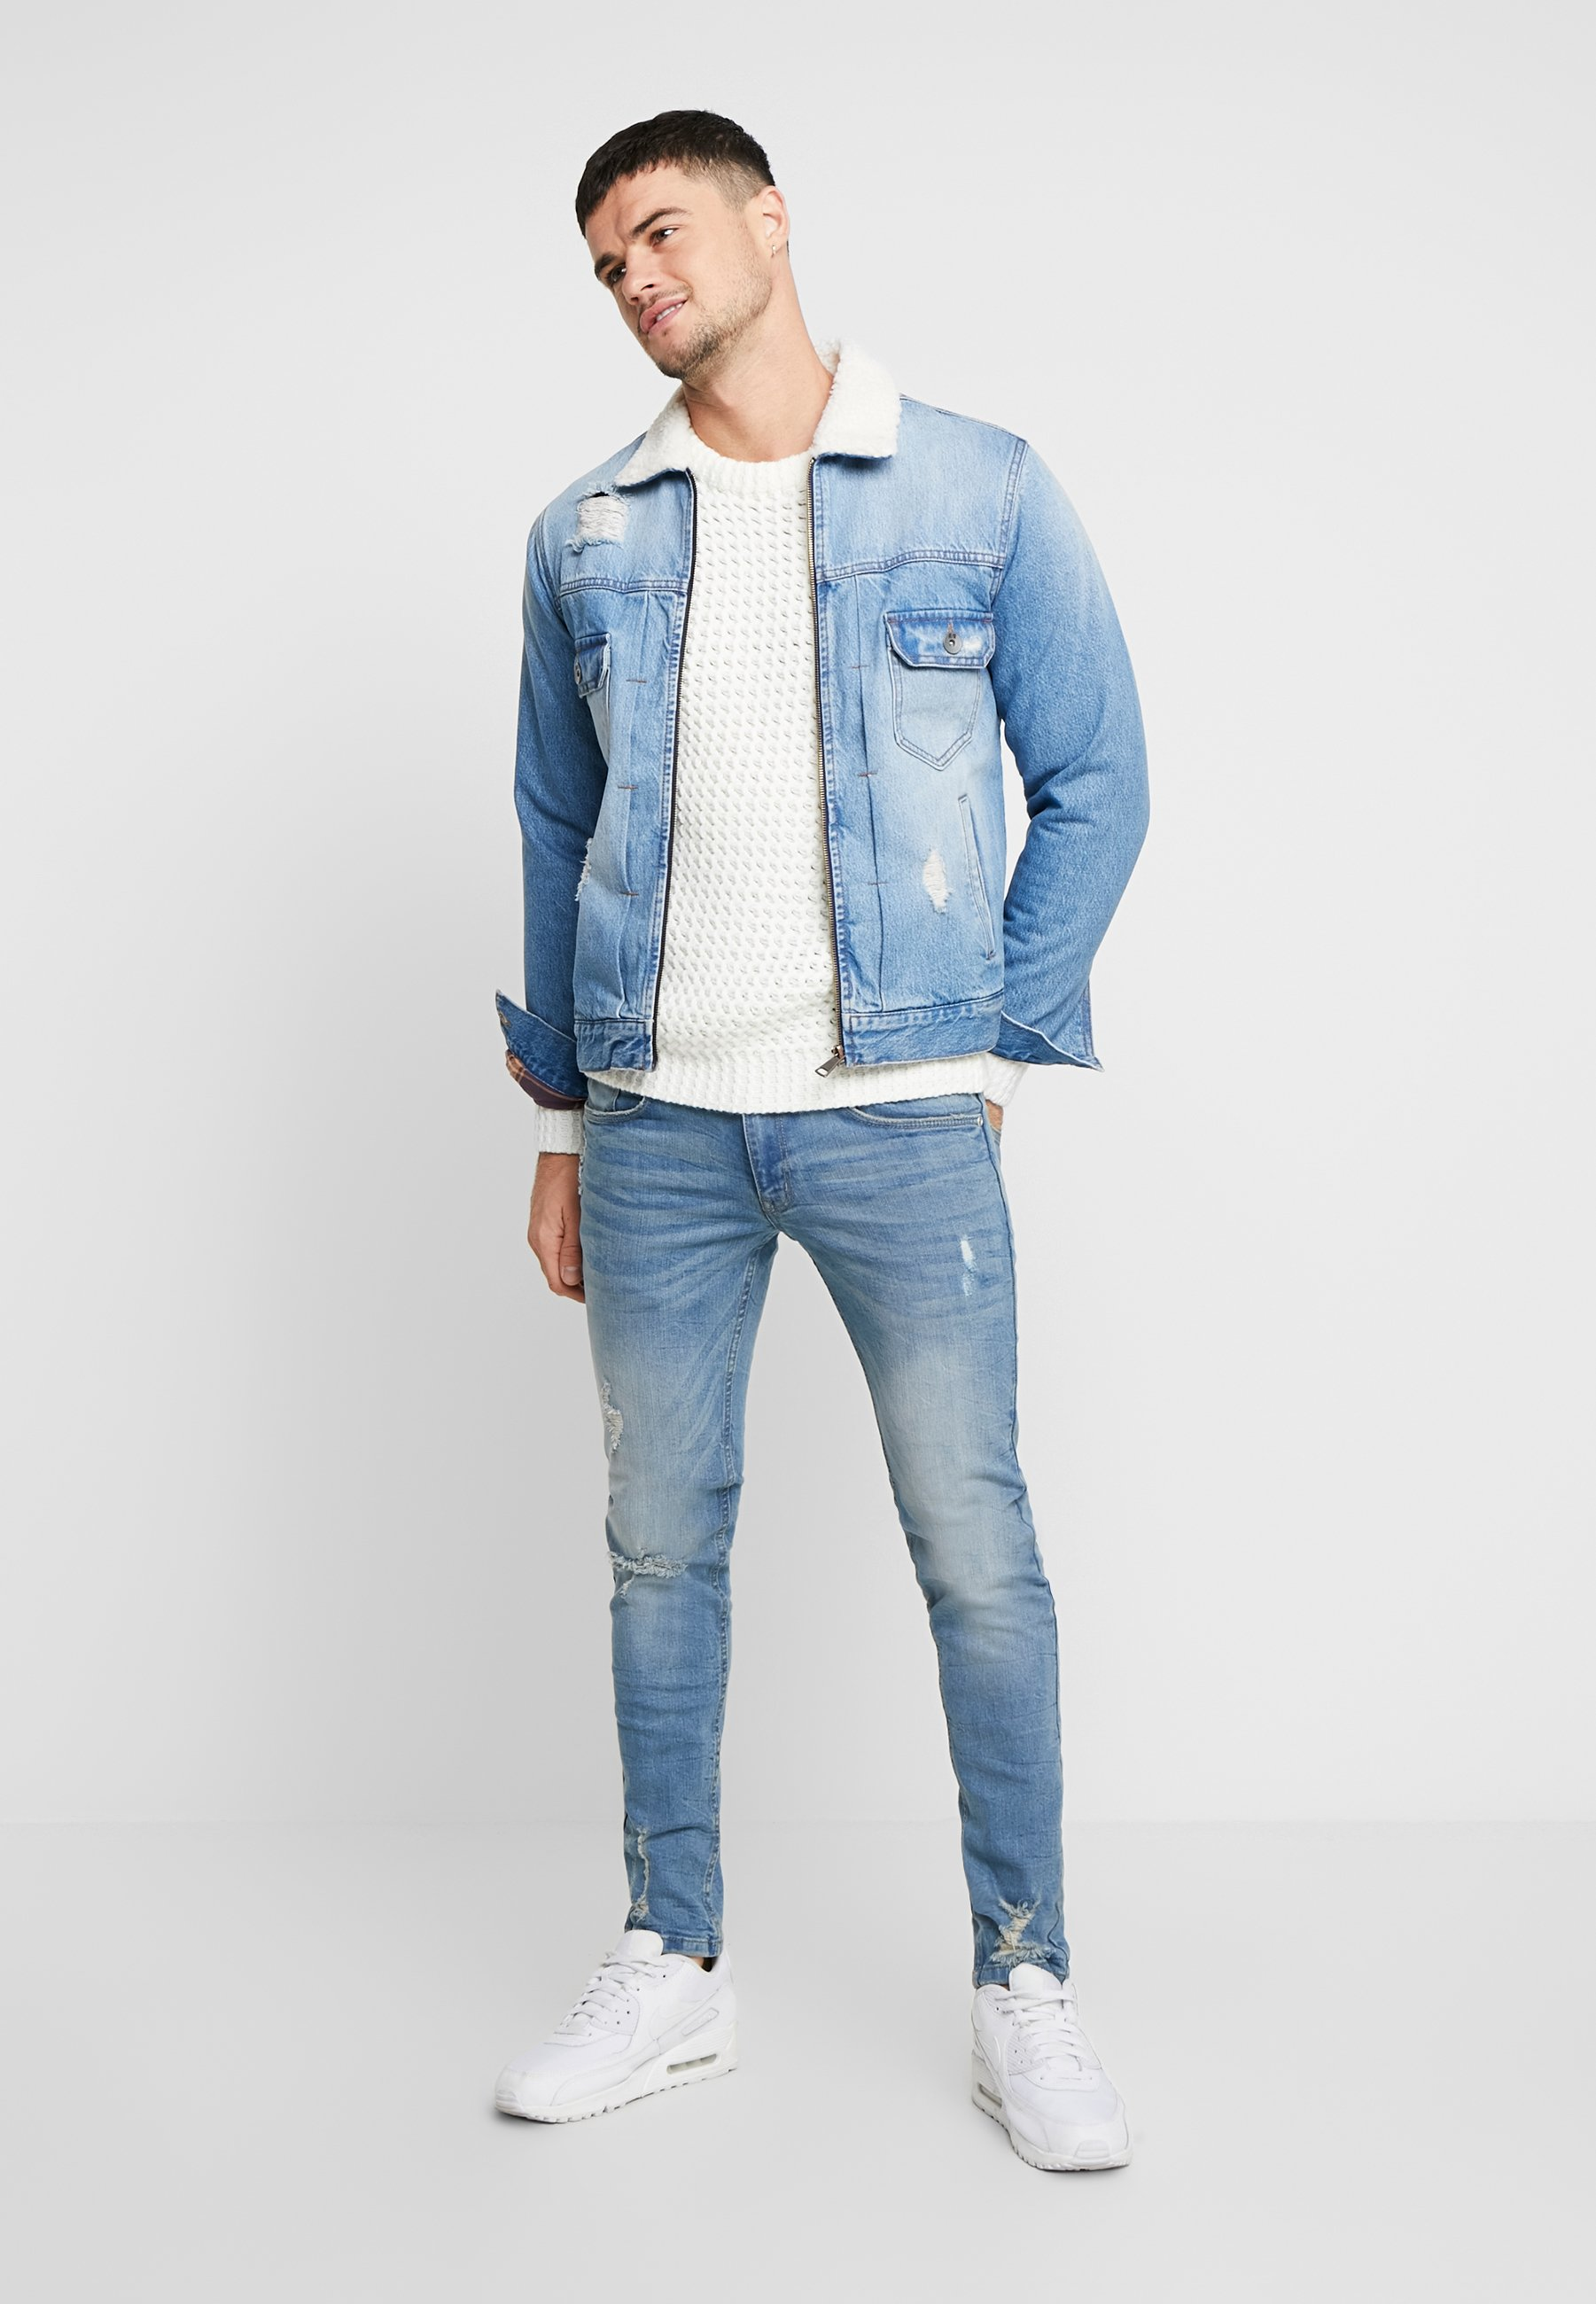 Redefined Rebel Dennis Jacket - Jeansjakke Light Blue/lyseblå Denim